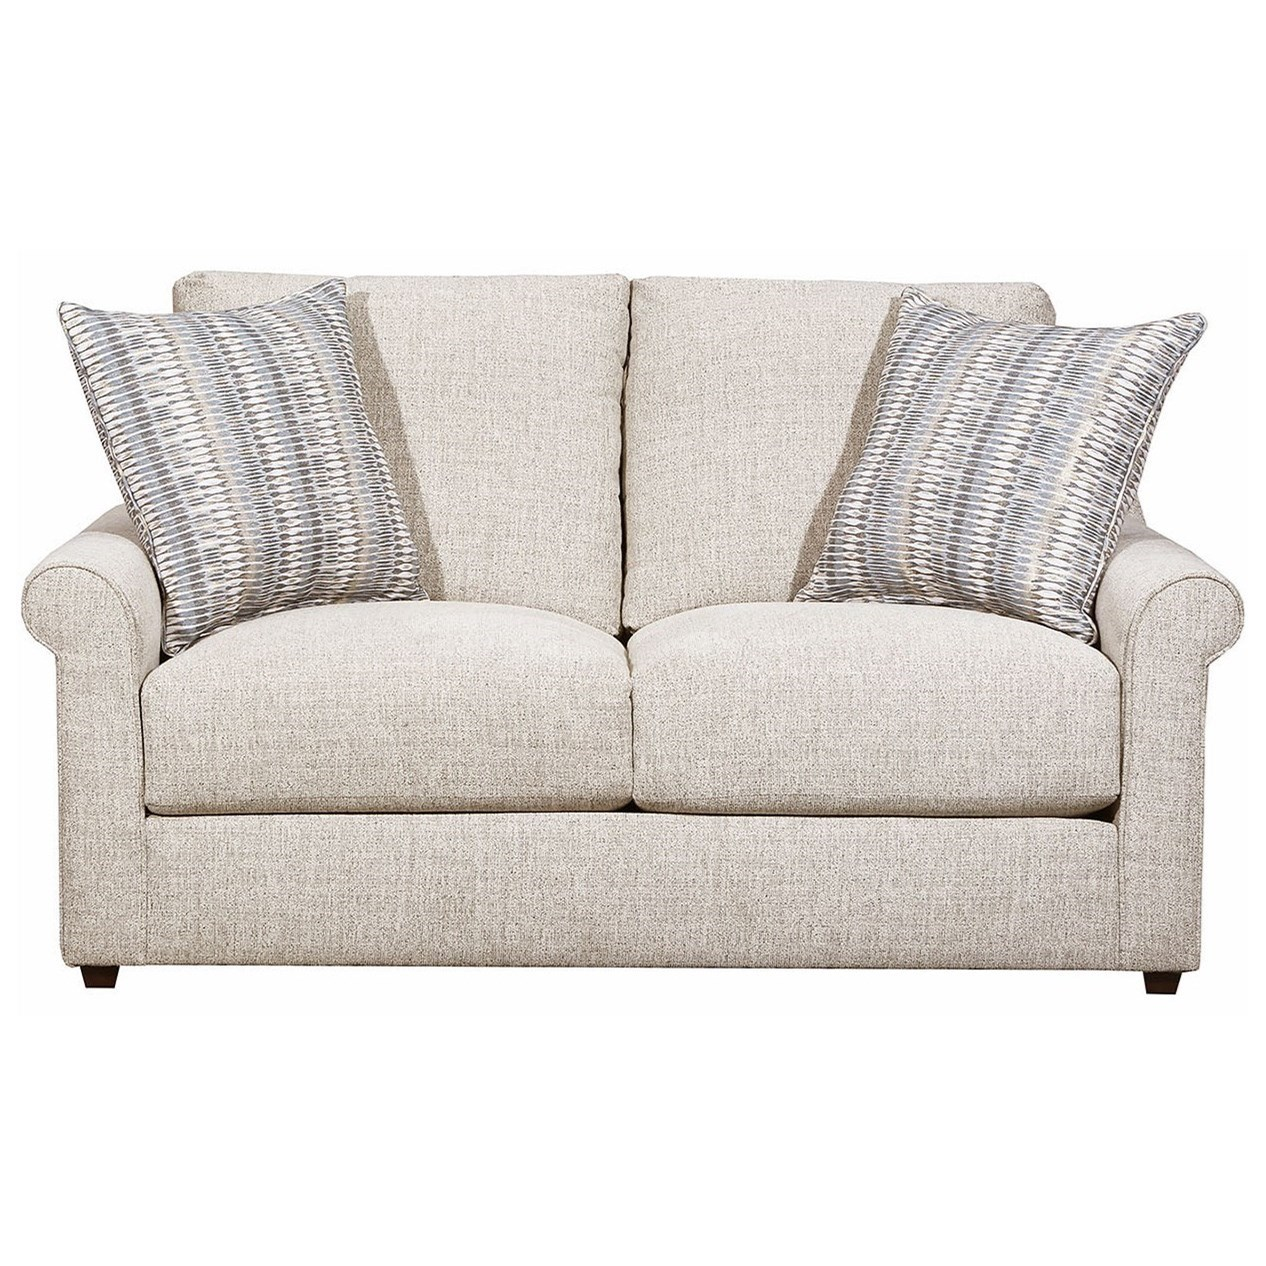 9910 Loveseat by United Furniture Industries at Dream Home Interiors